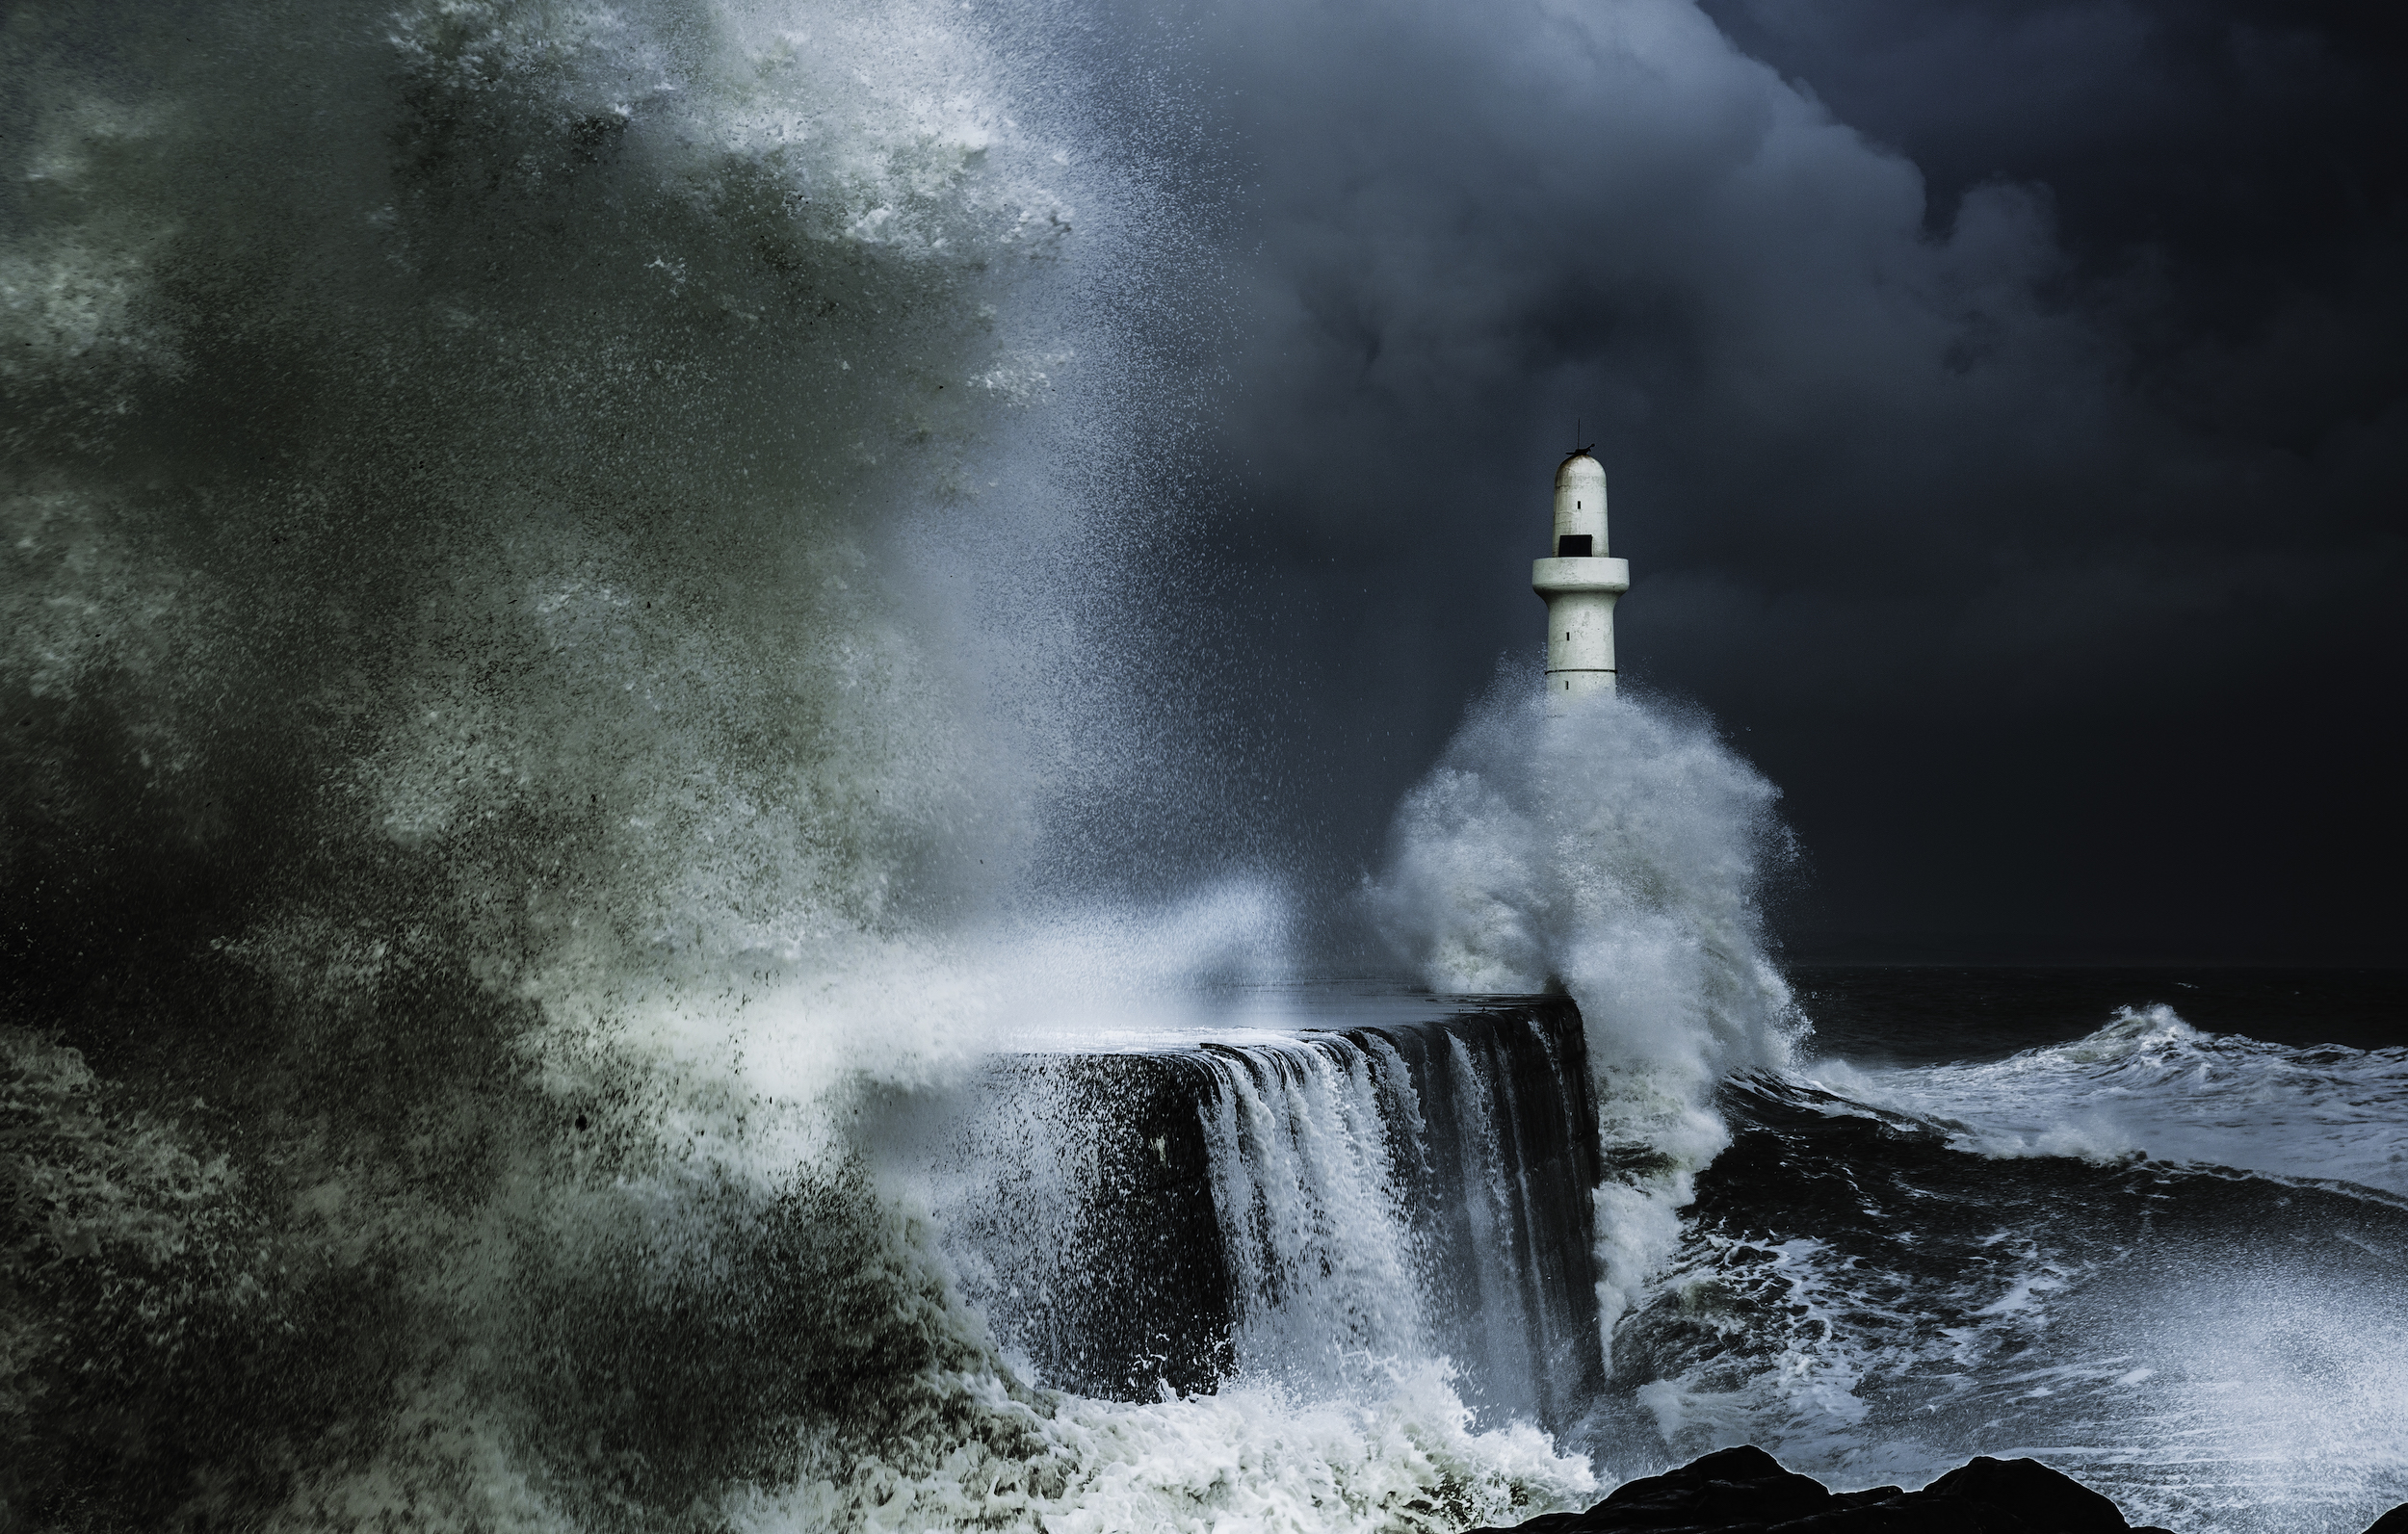 Waves crashing against a breakwater in stormy conditions